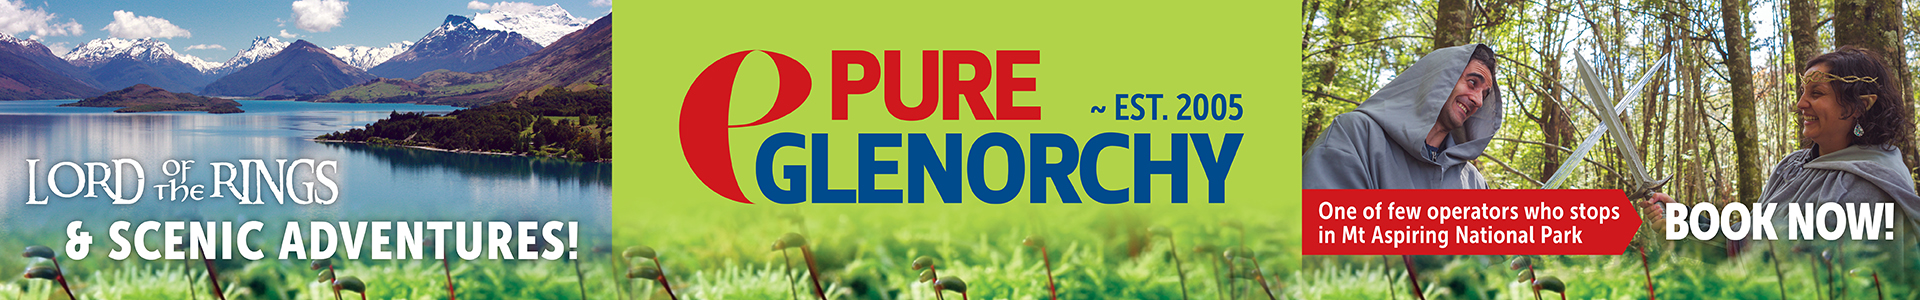 Pure Glenorchy Queenstown.com Banner 1920x300-AW.jpg